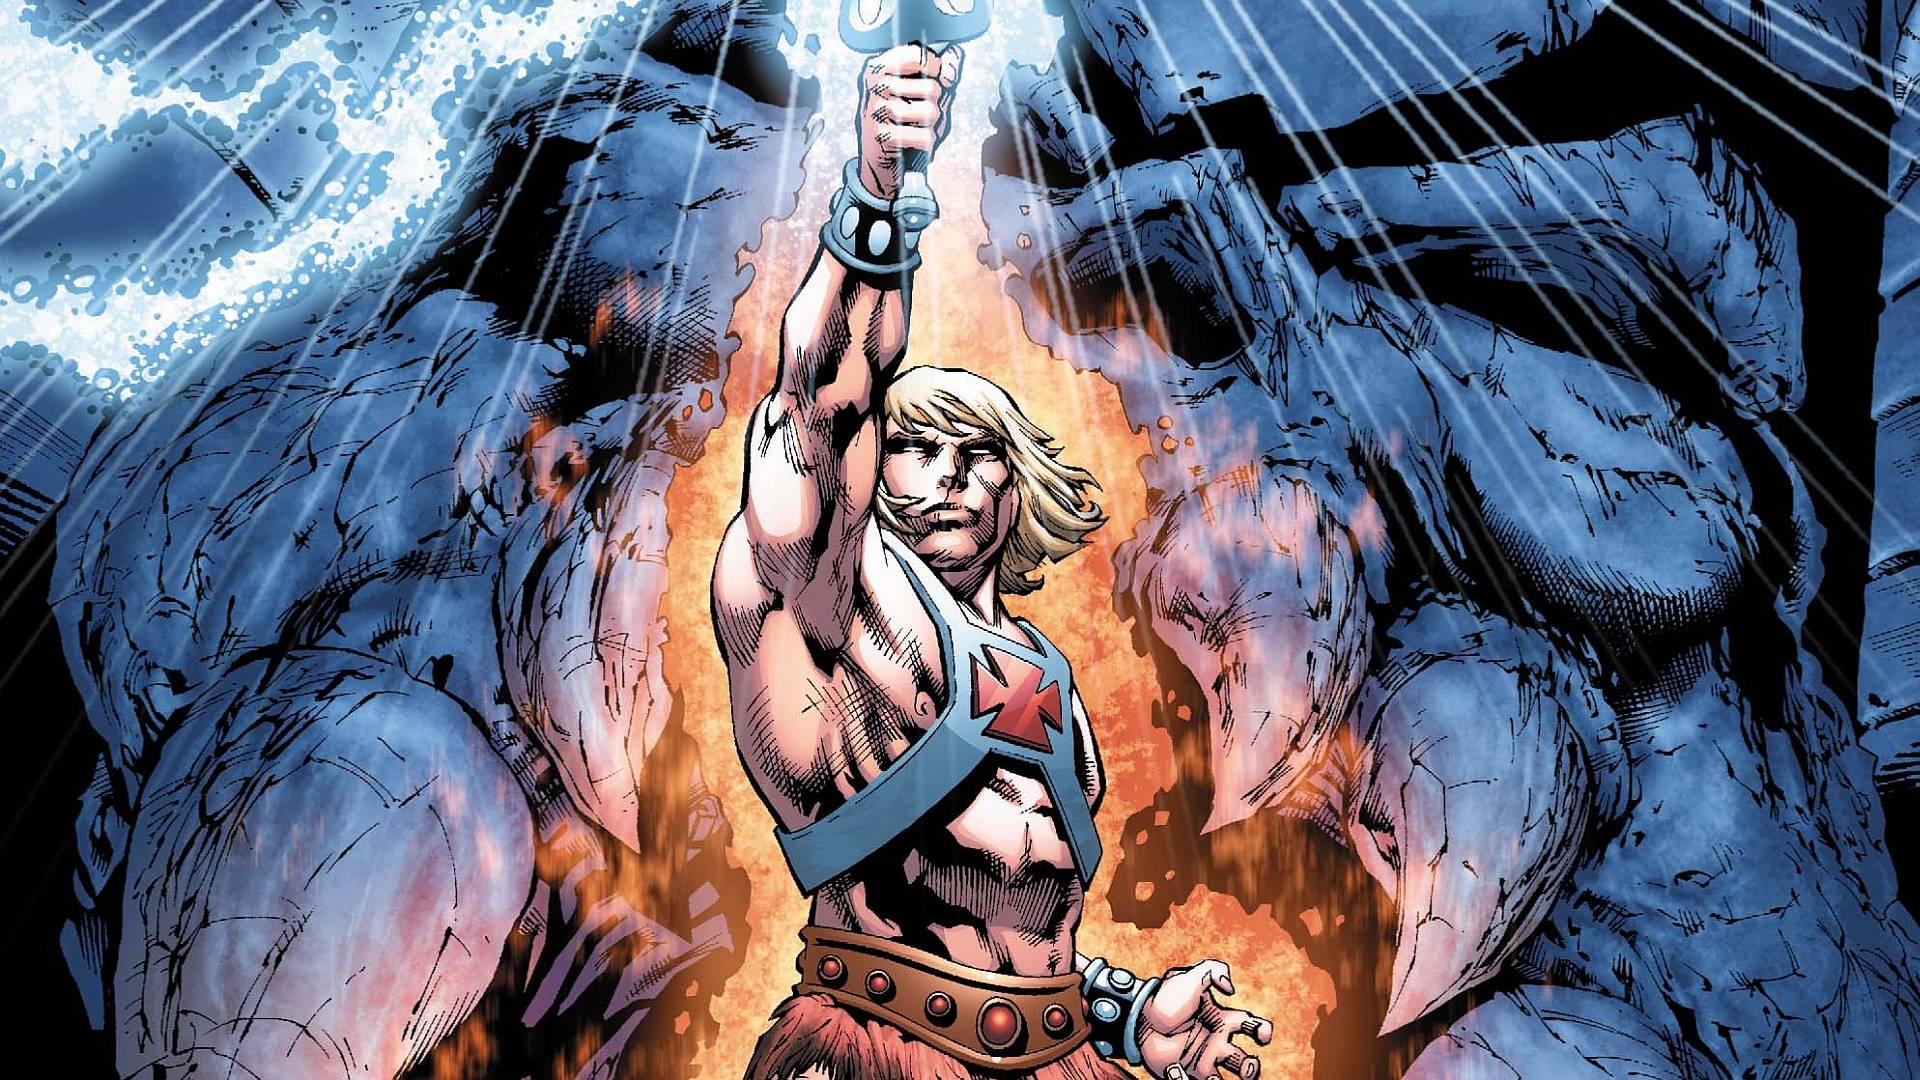 he man wallpapers wallpaper cave